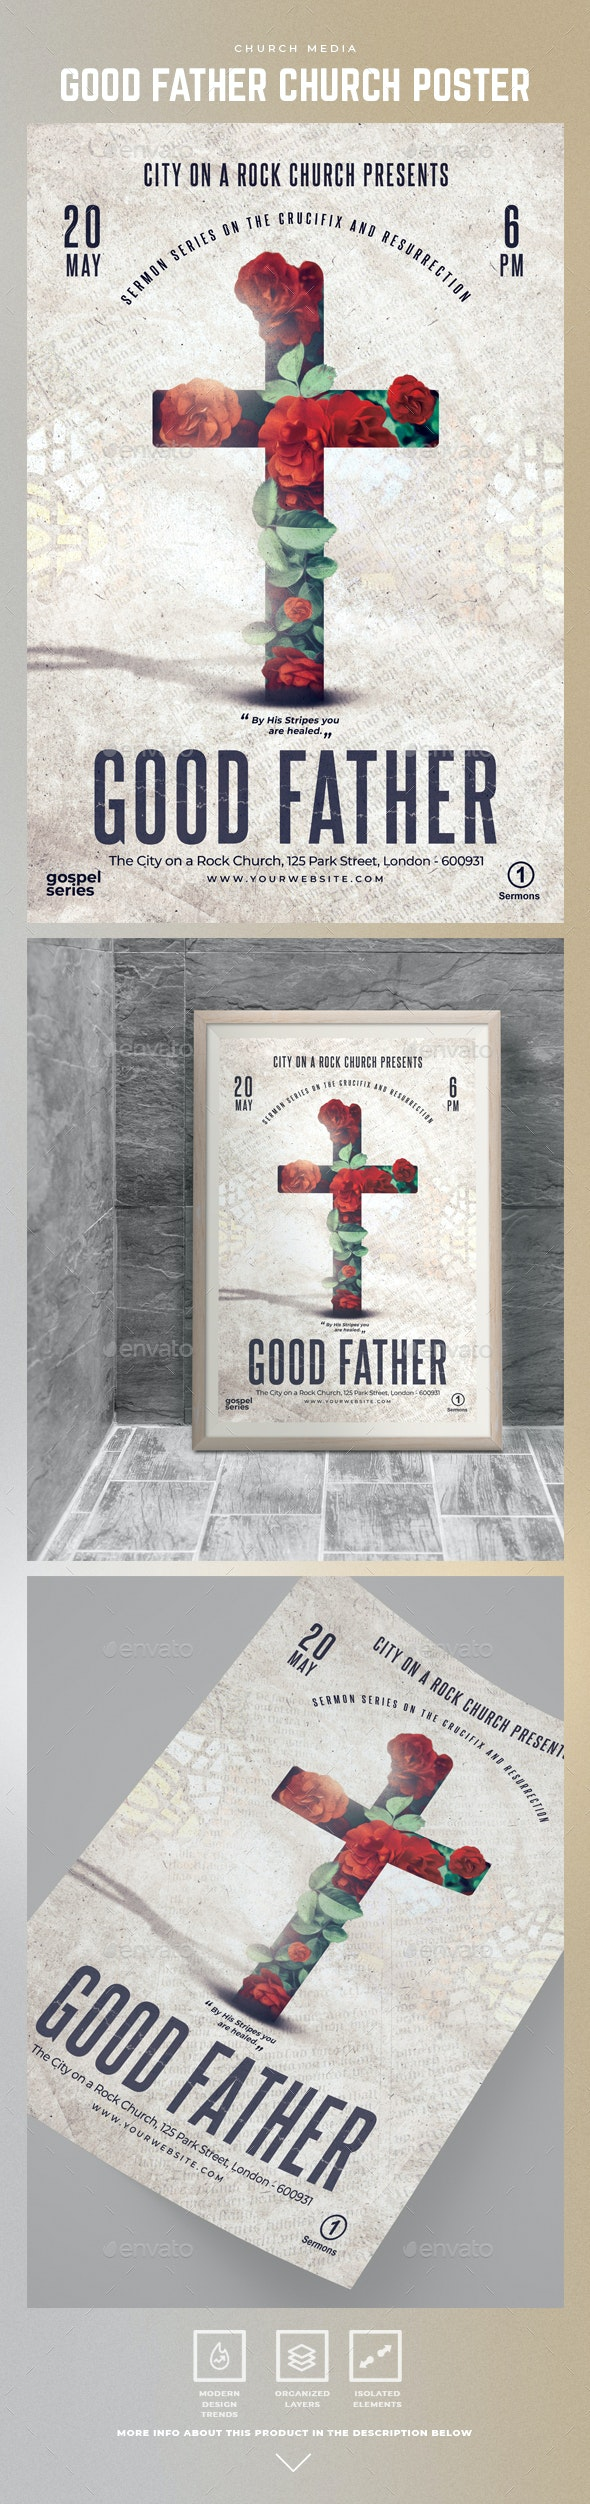 Good Father Church Poster Template - Church Flyers